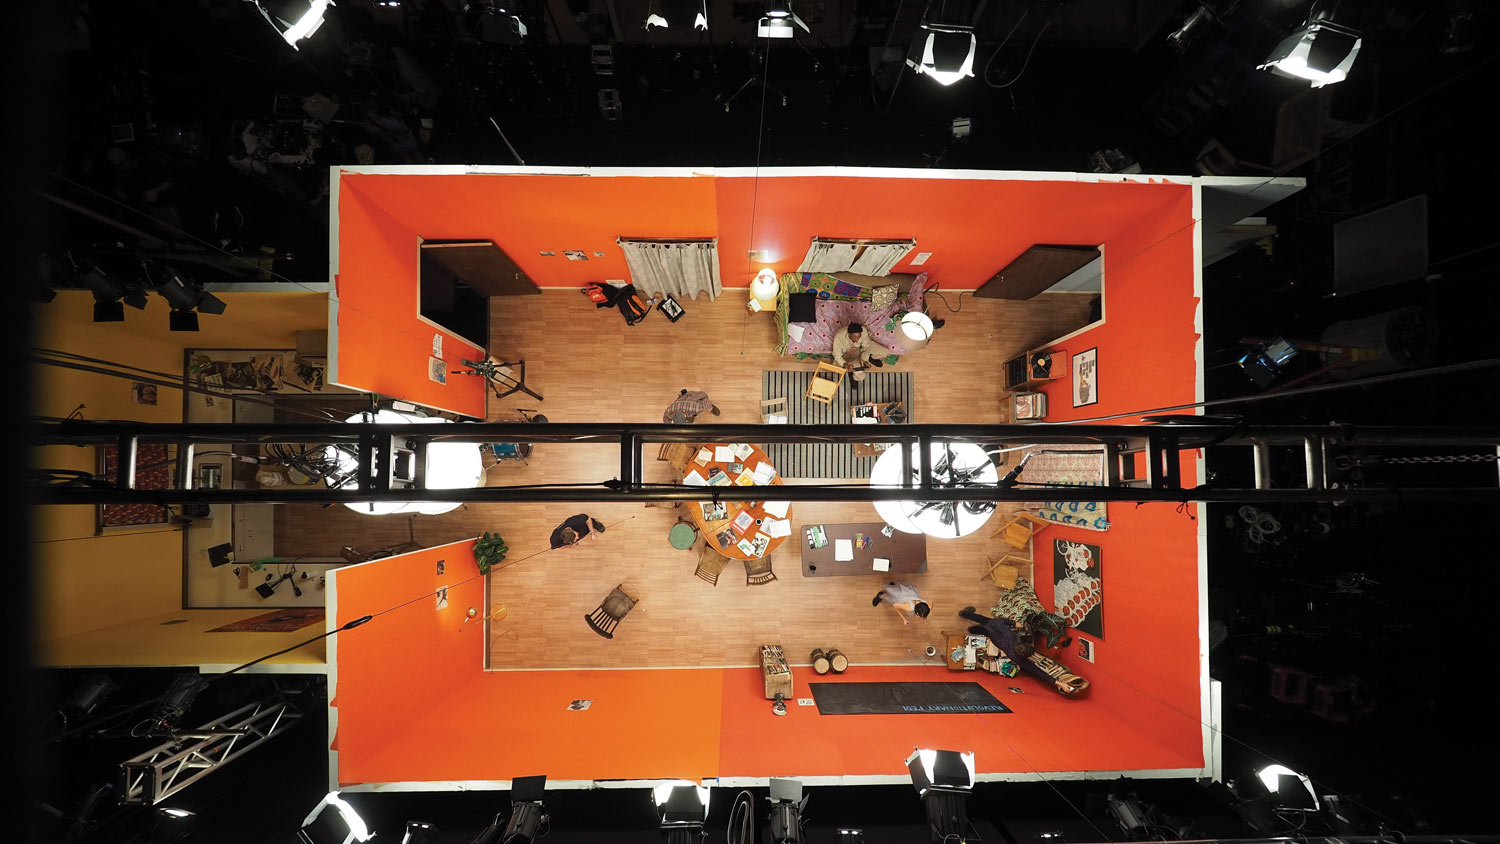 a shot from above the studio of an film production.